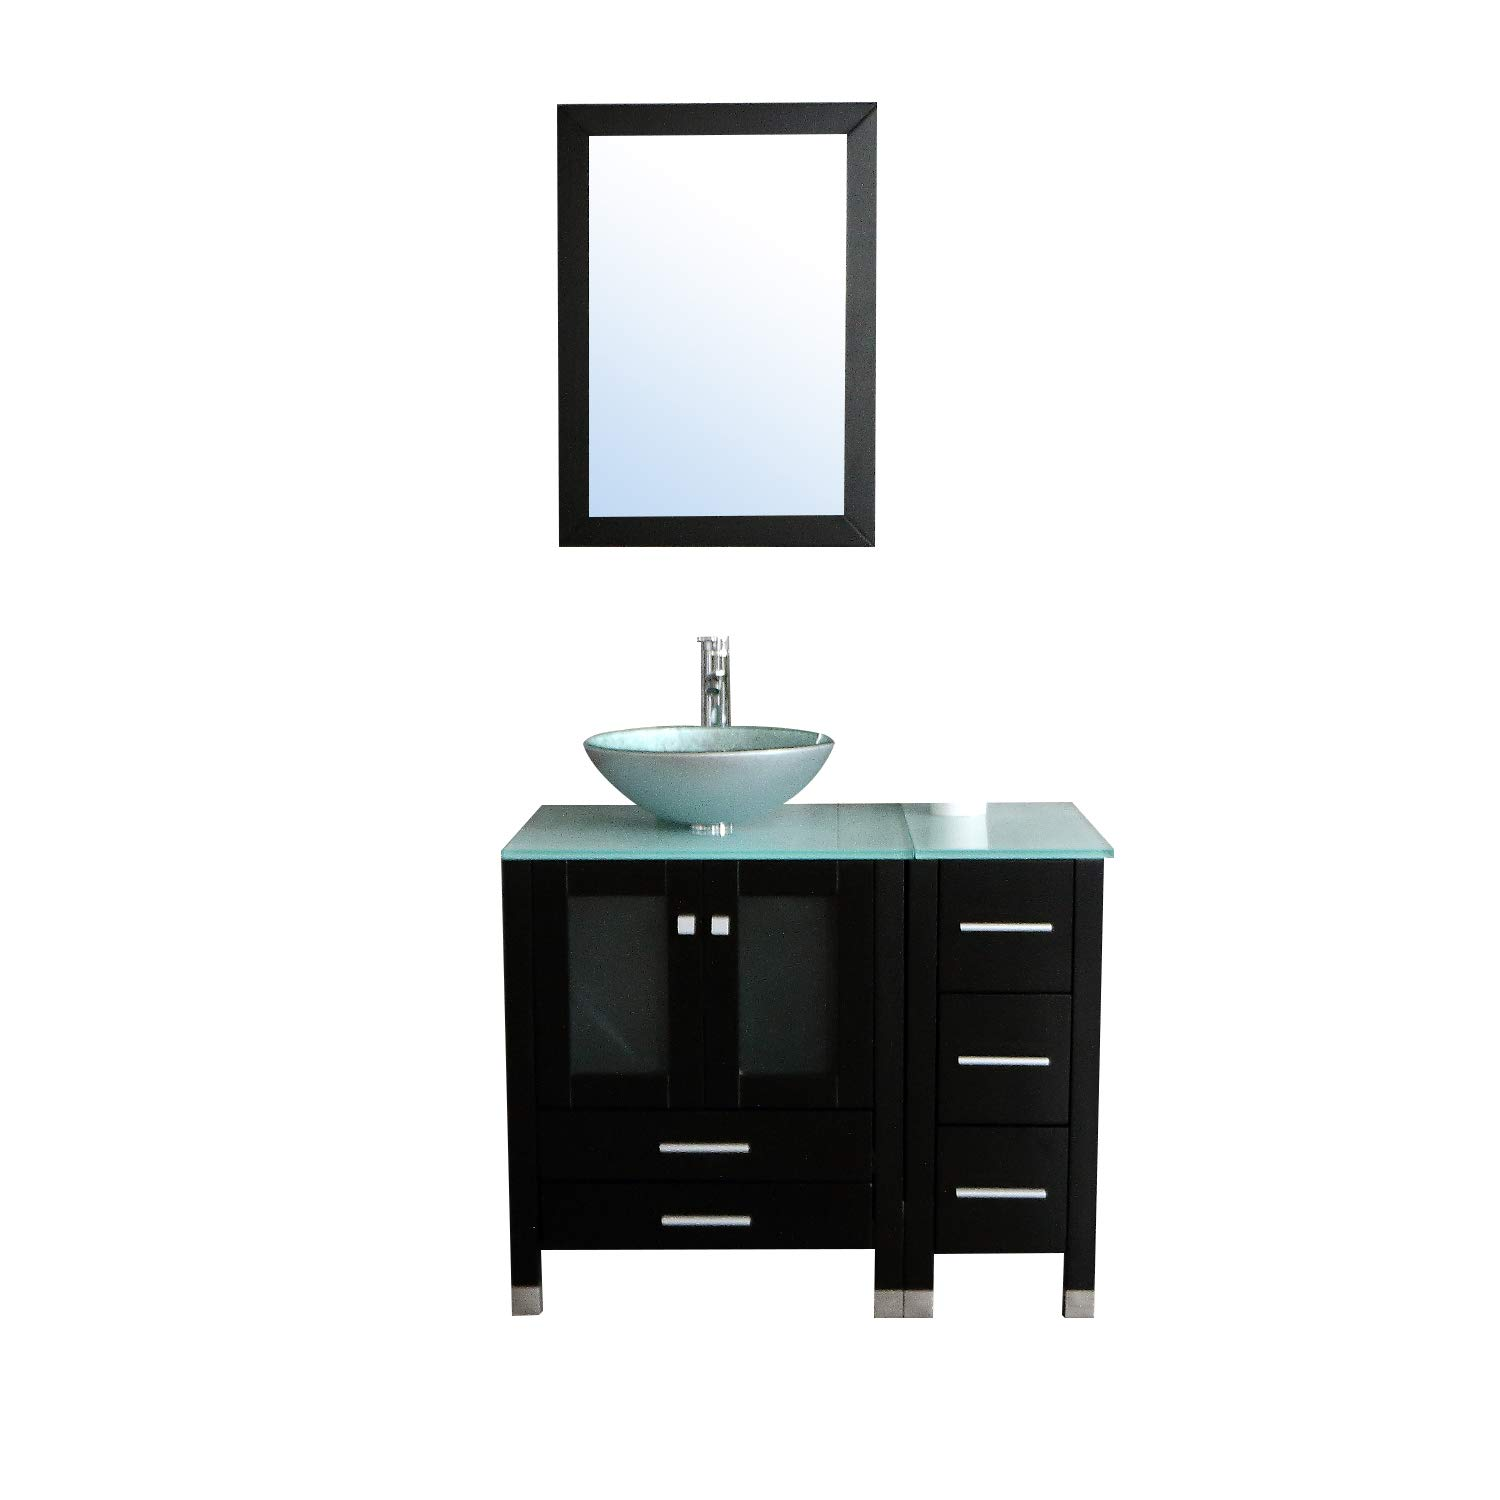 Wondrous Walcut 36 Bathroom Vanity And Sink Combo Mdf Wood Cabinet And Glass Vessel Sink And Faucet Combo 5 Home Interior And Landscaping Ologienasavecom